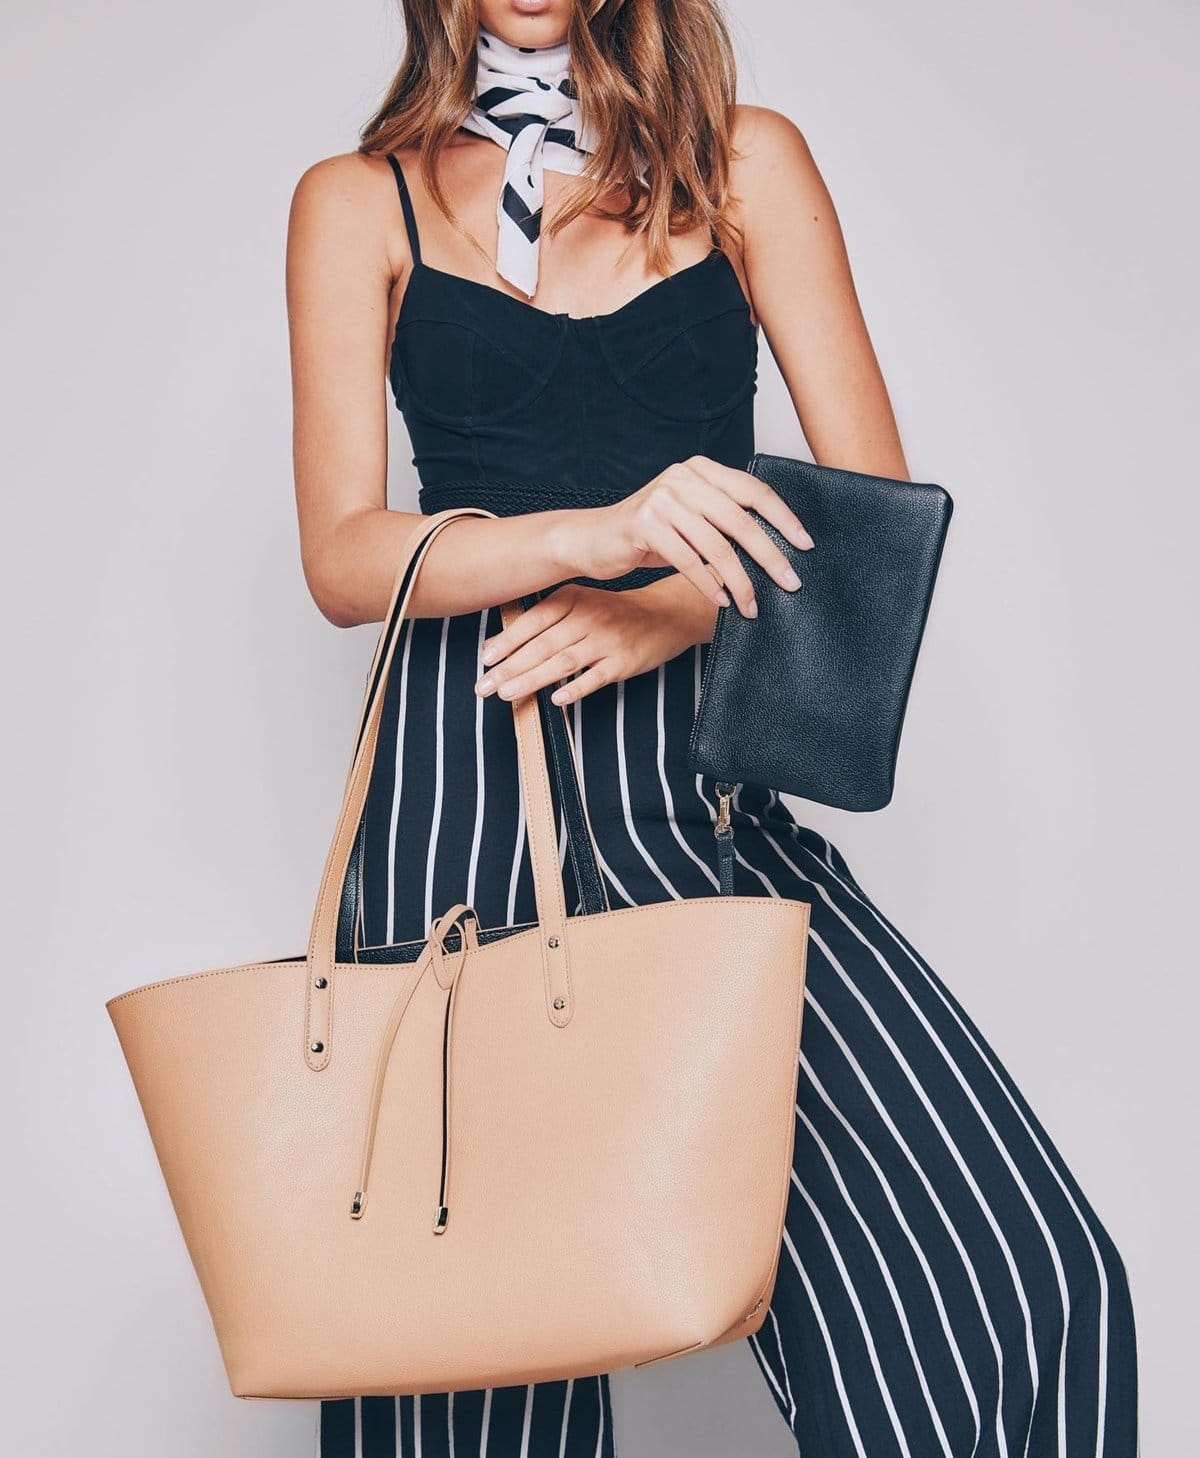 This reversible tote features a removable wristlet containing a 3000 mAh phone charging battery